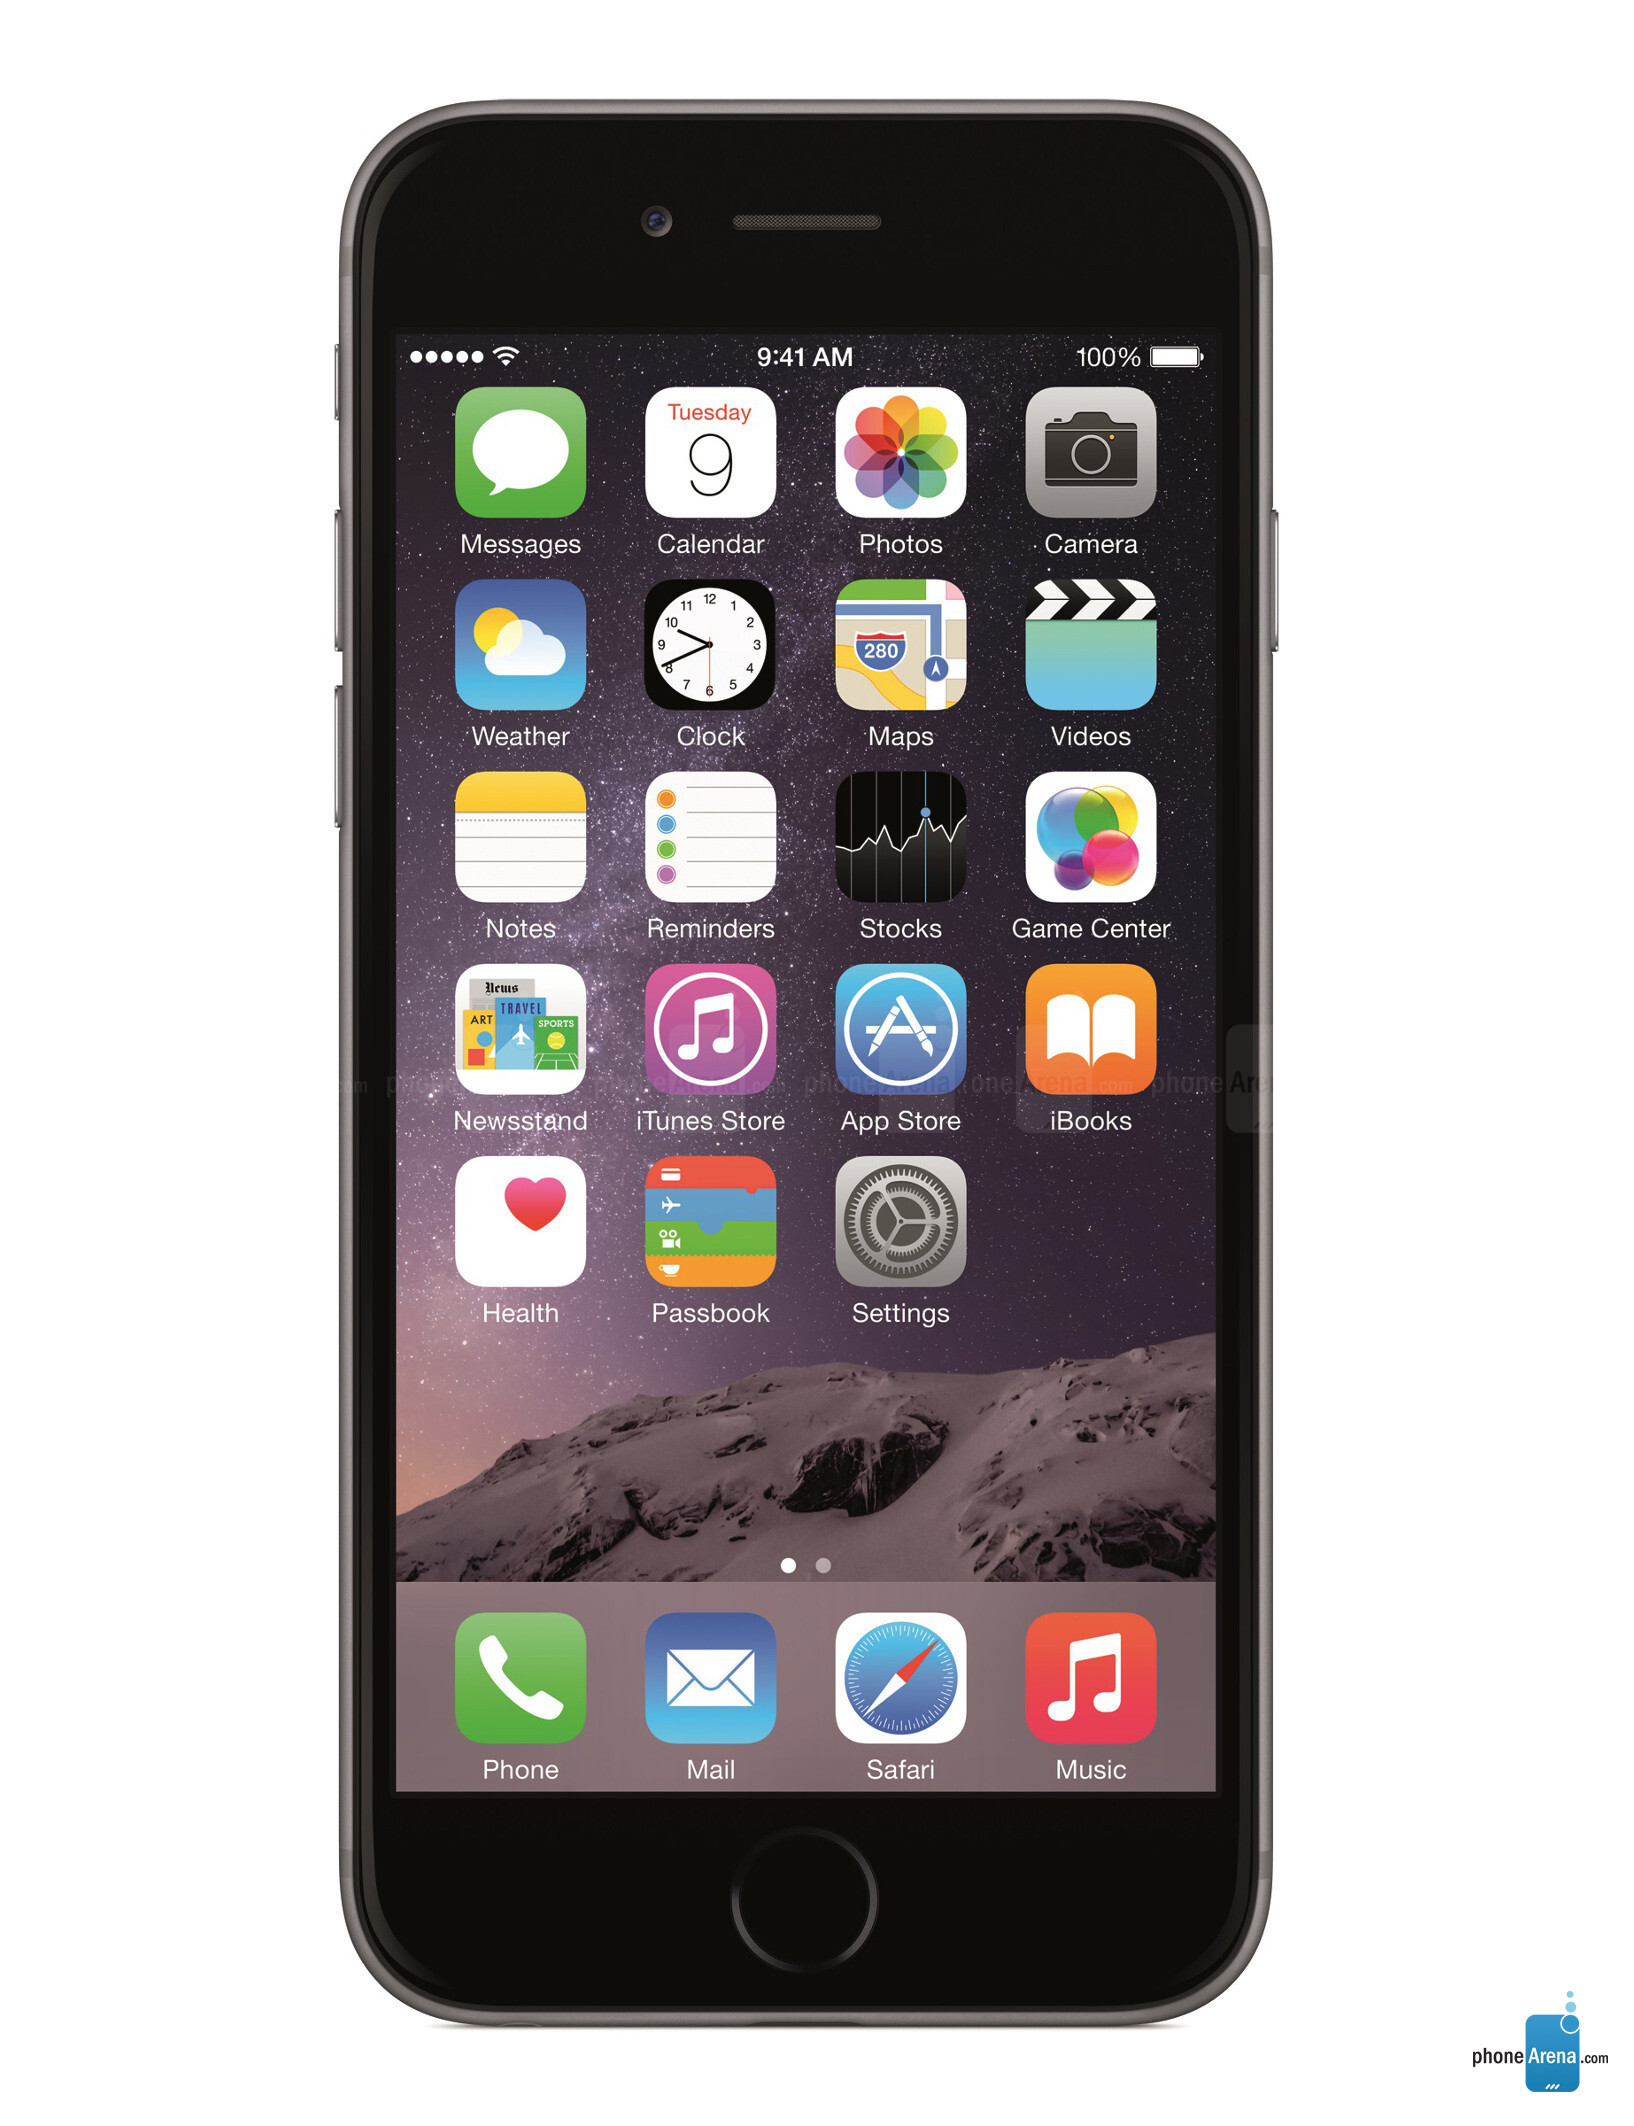 IPHONE 6 COMPACT SCREEN SIZE